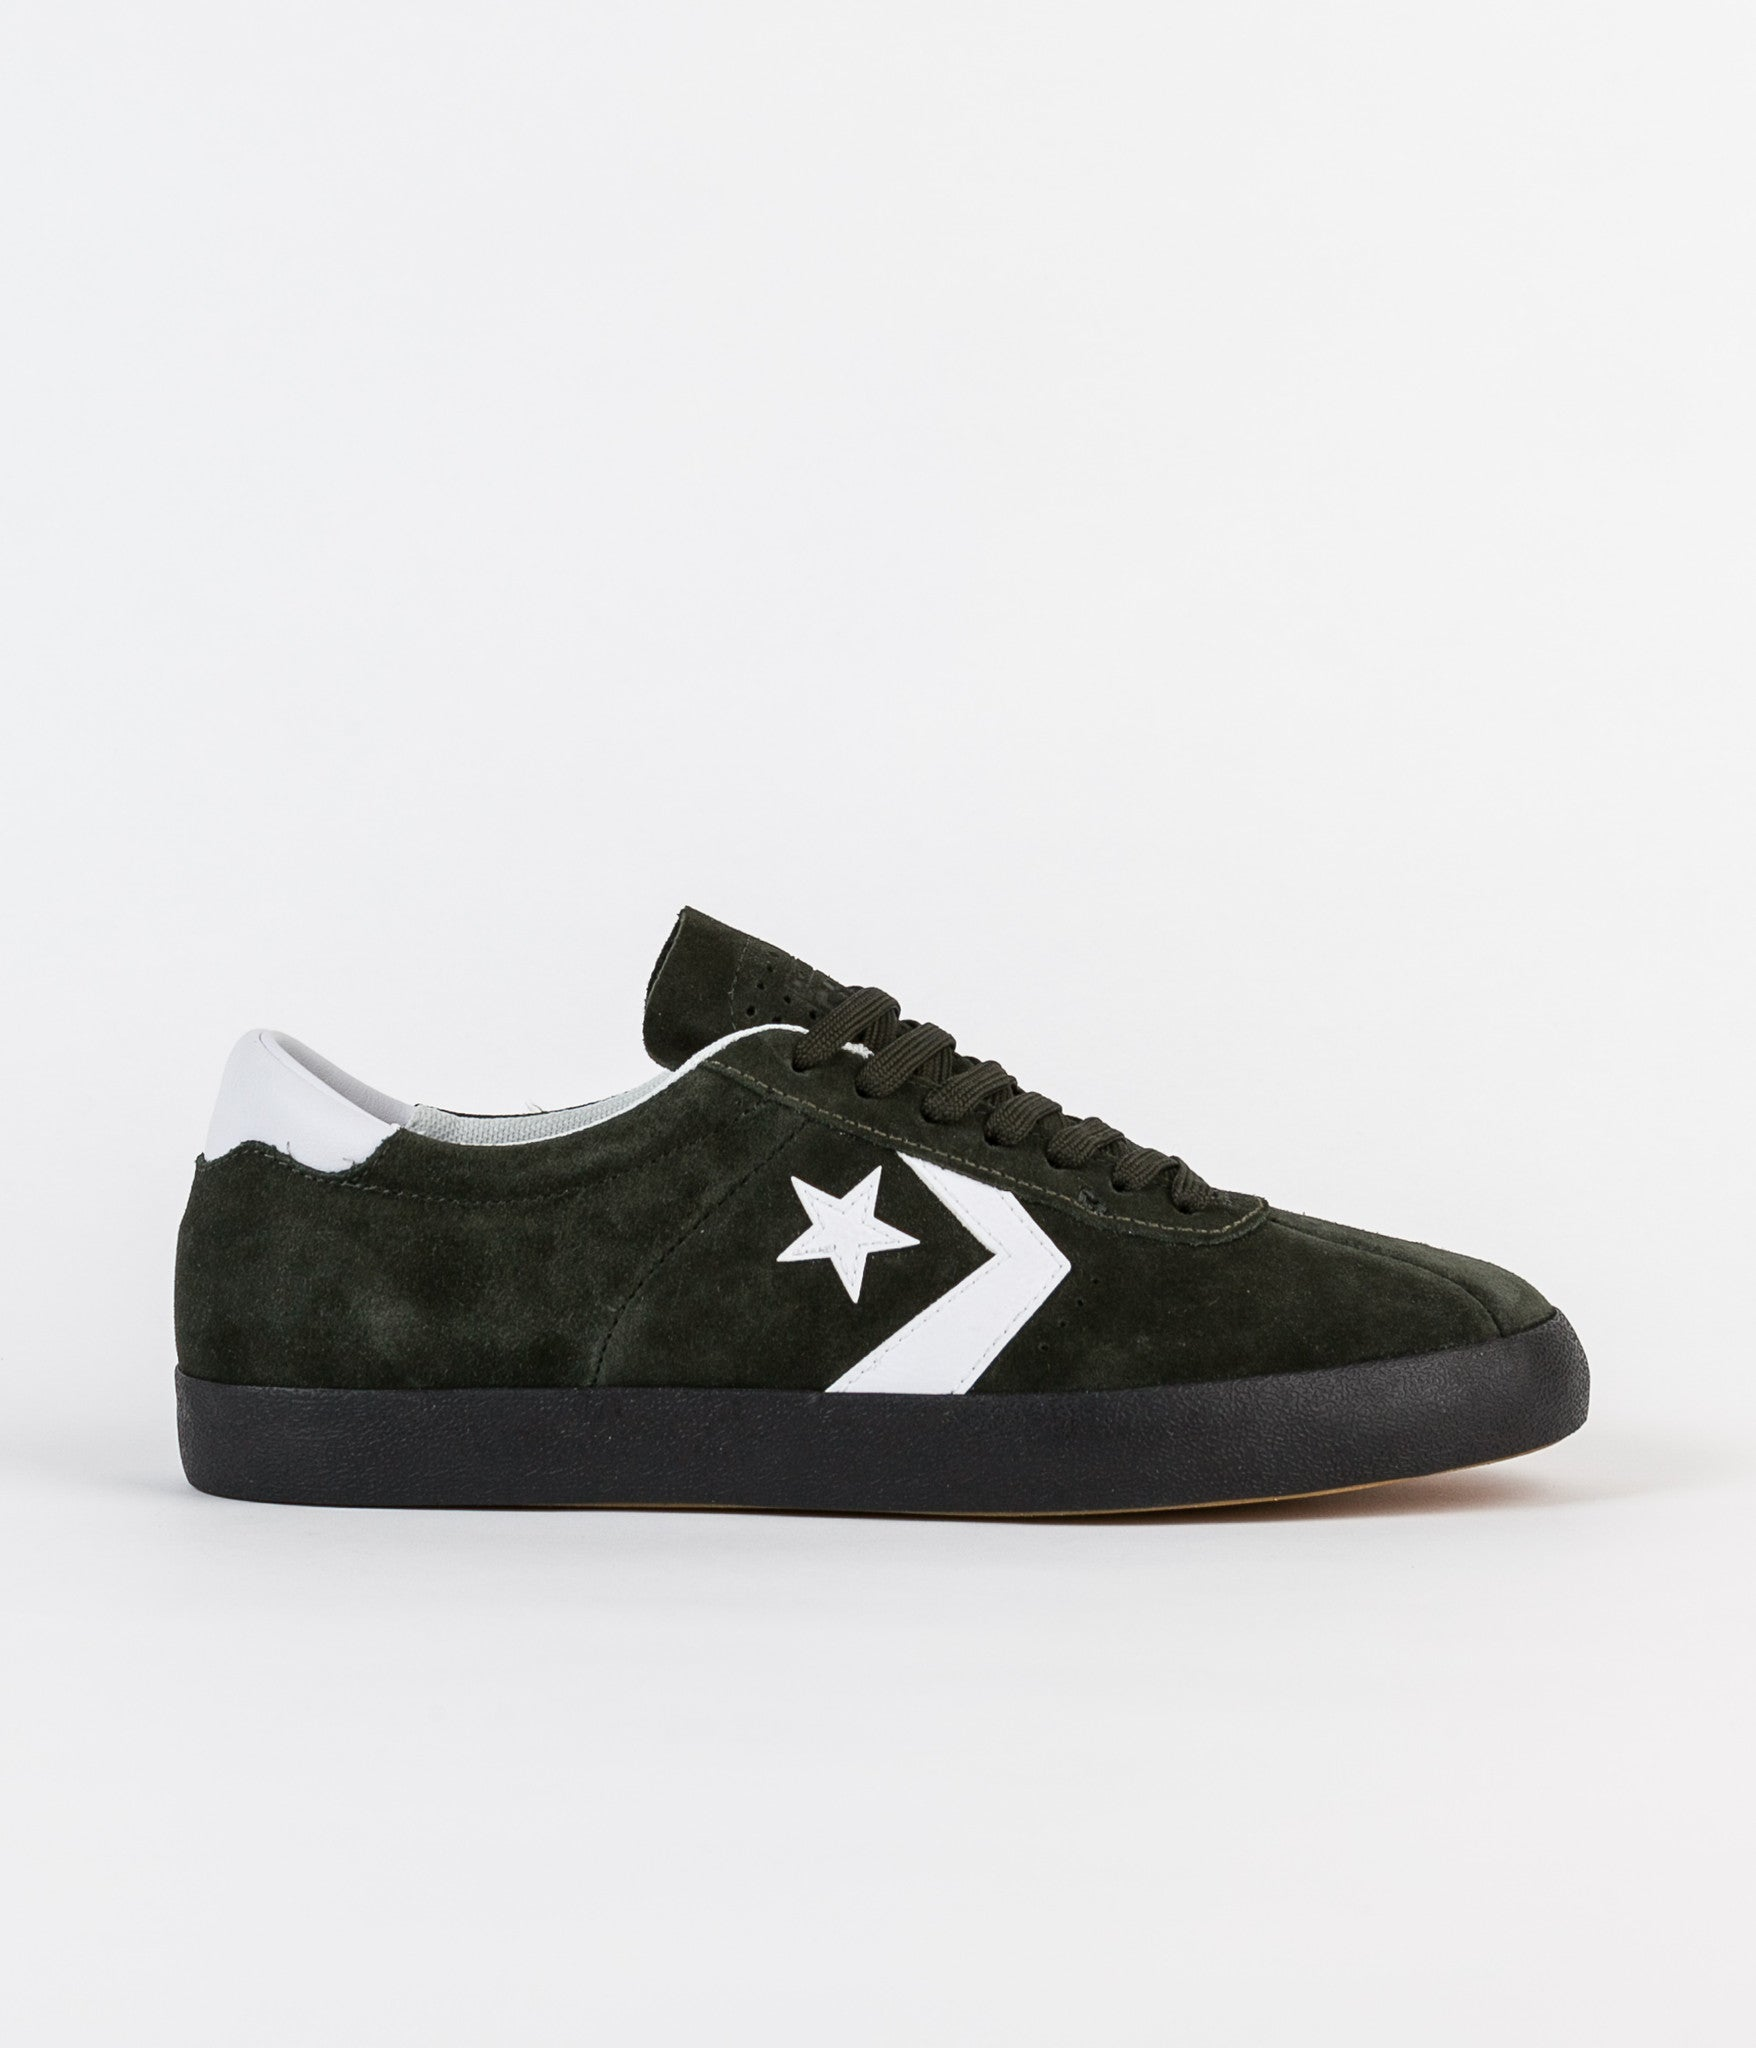 Converse Pro Ox Zered Bassett Breakpoint Shoes - Green Onyx / White / Black